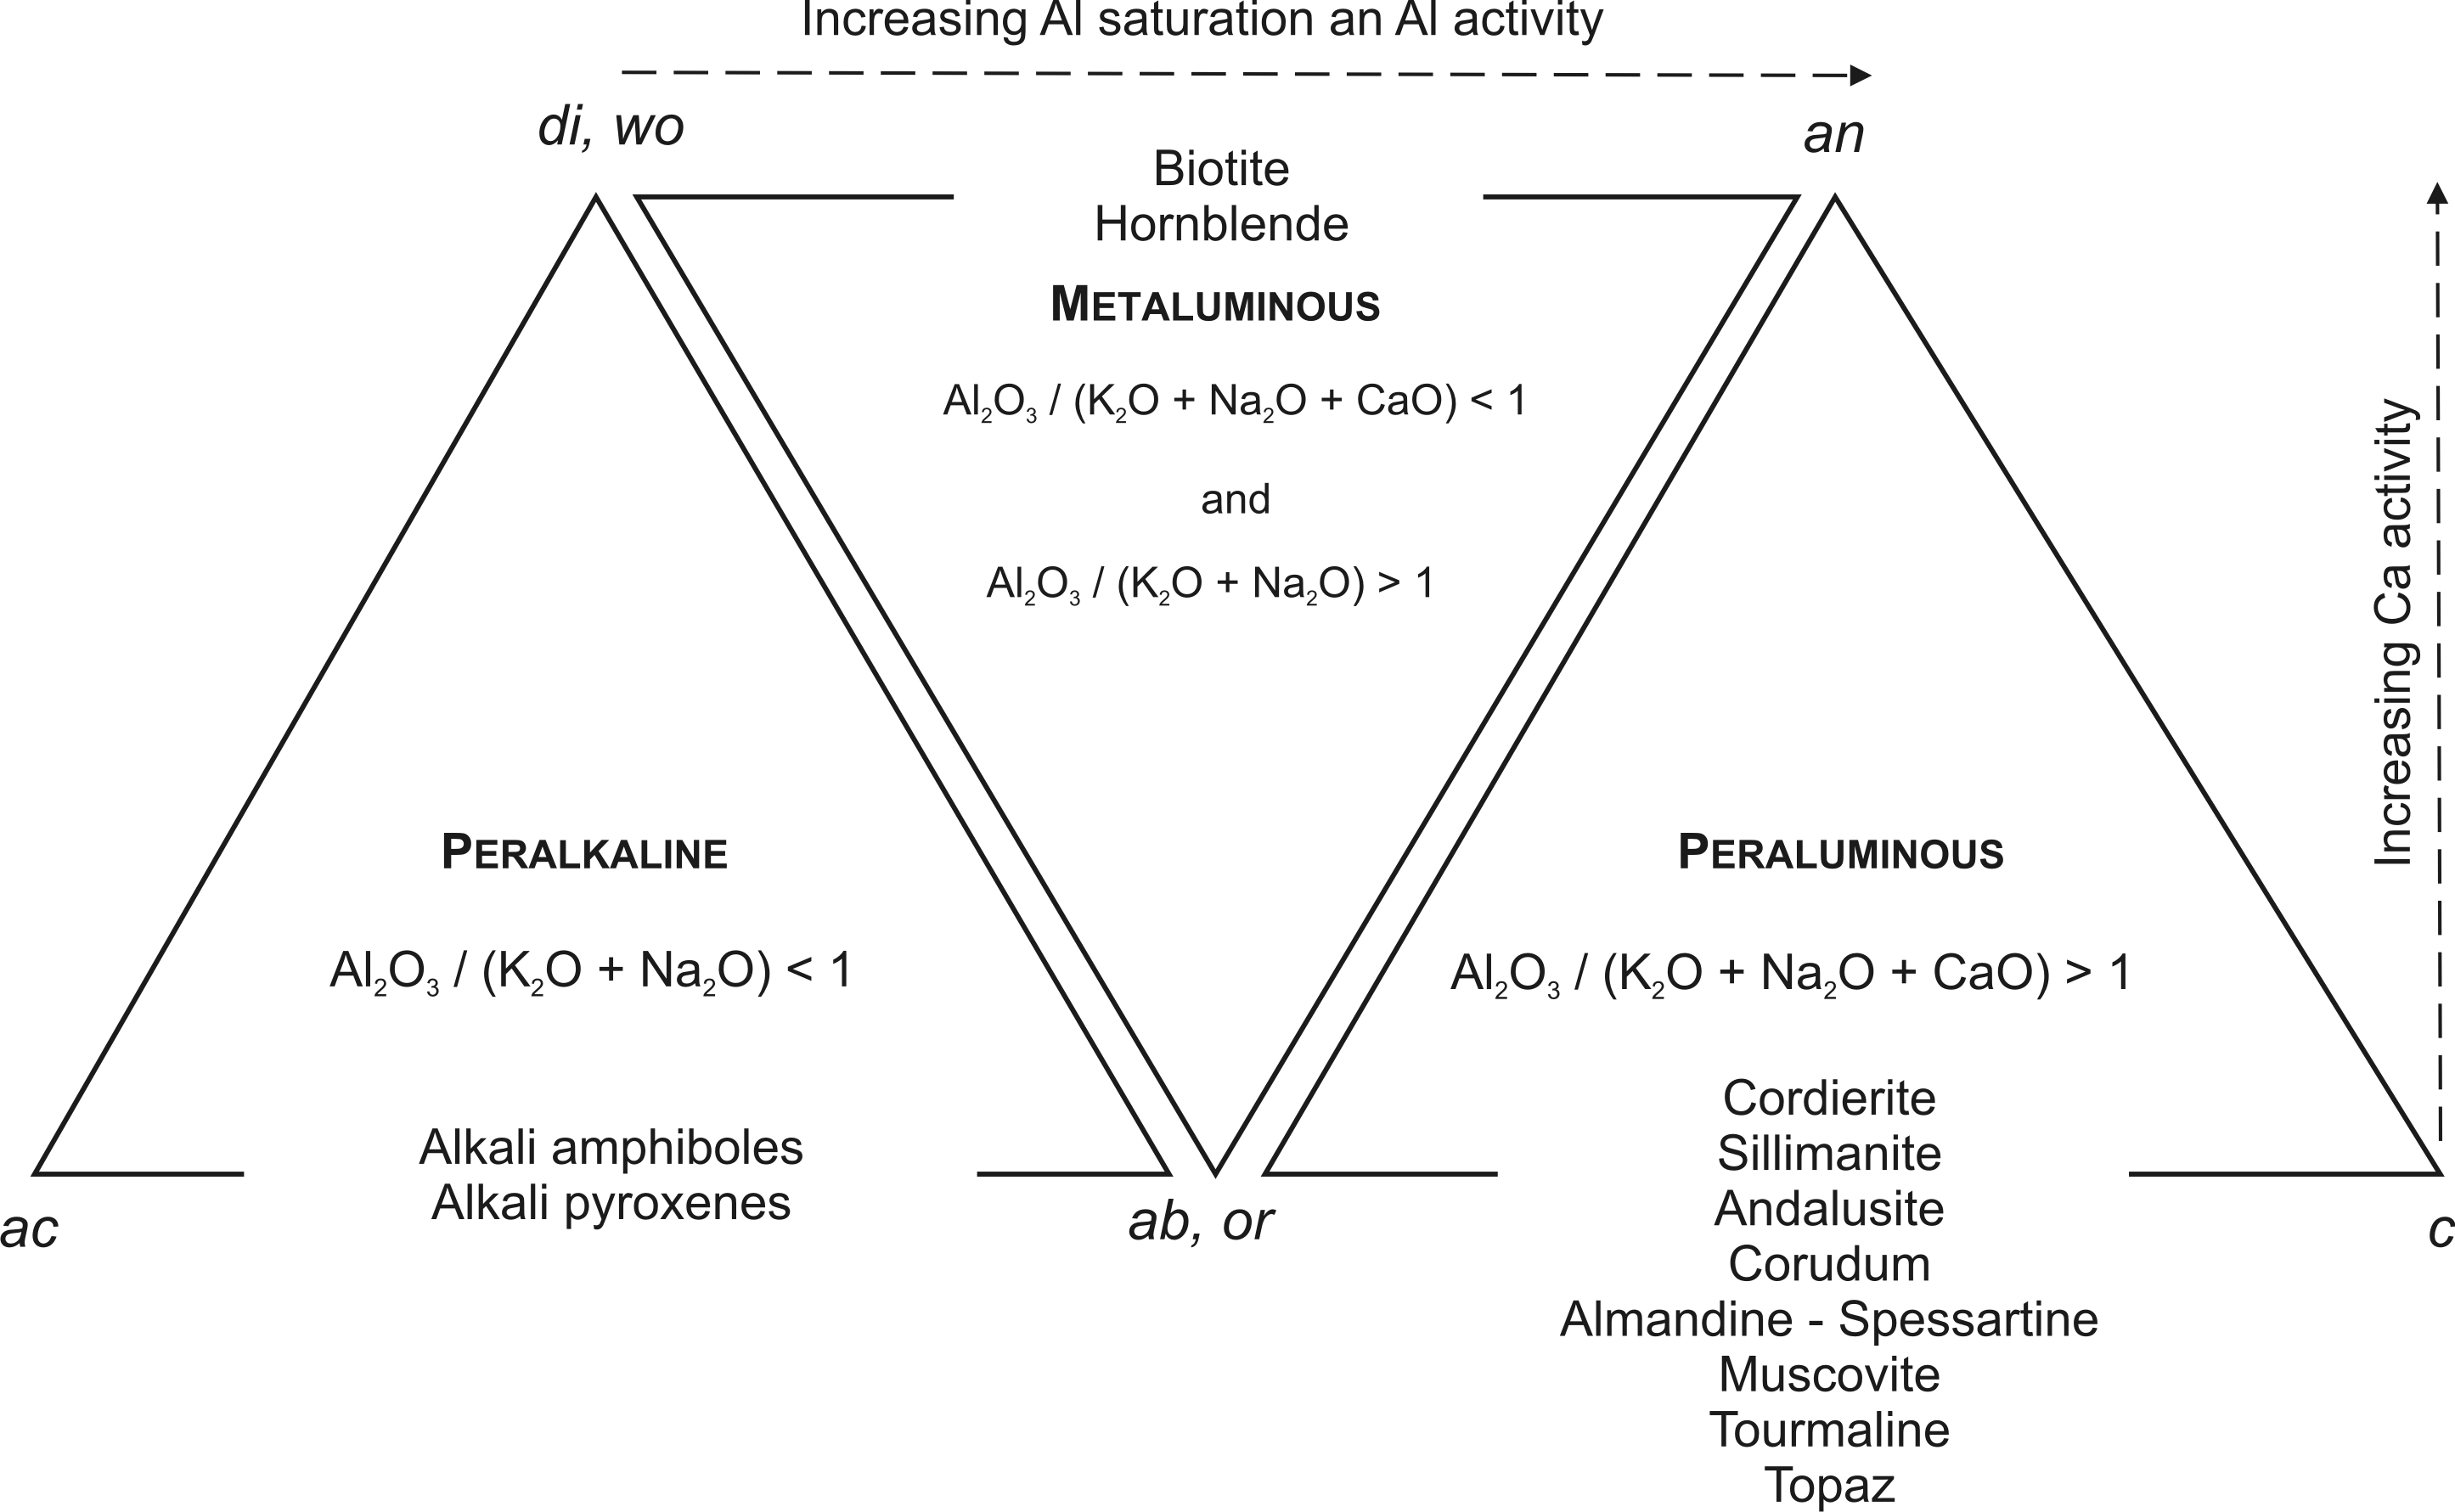 atlas of magmatic rocks classification of felsic rocks based on the degree of al2o3 saturation apices of the triangles are molecular ratios of normative minerals